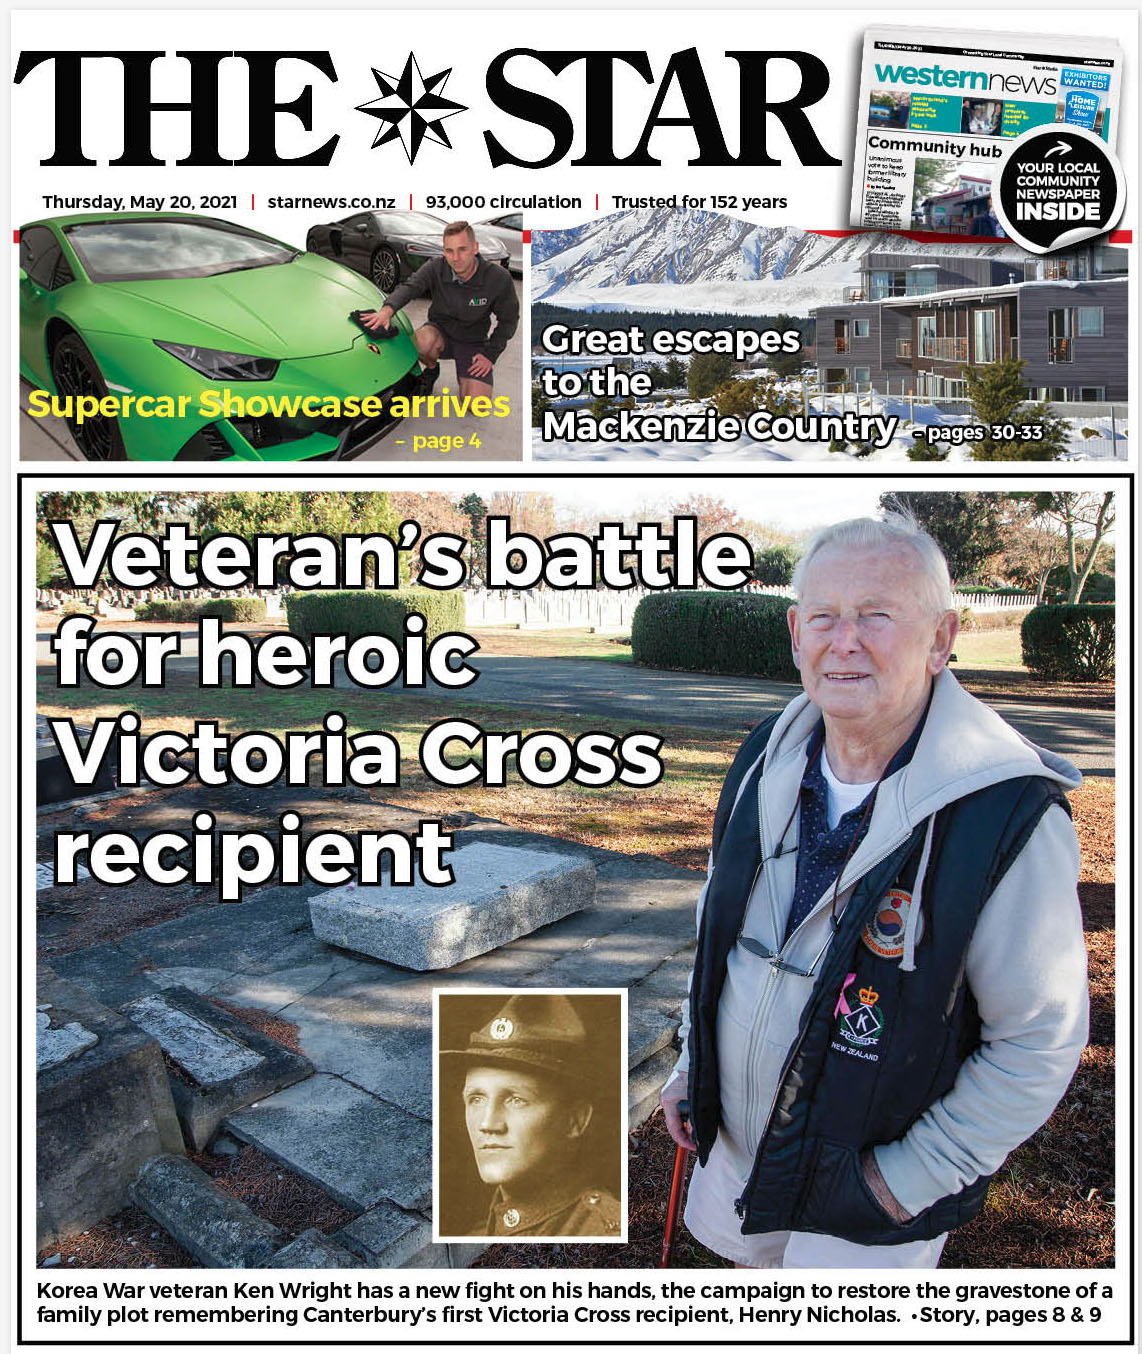 The Star front page on May 20.